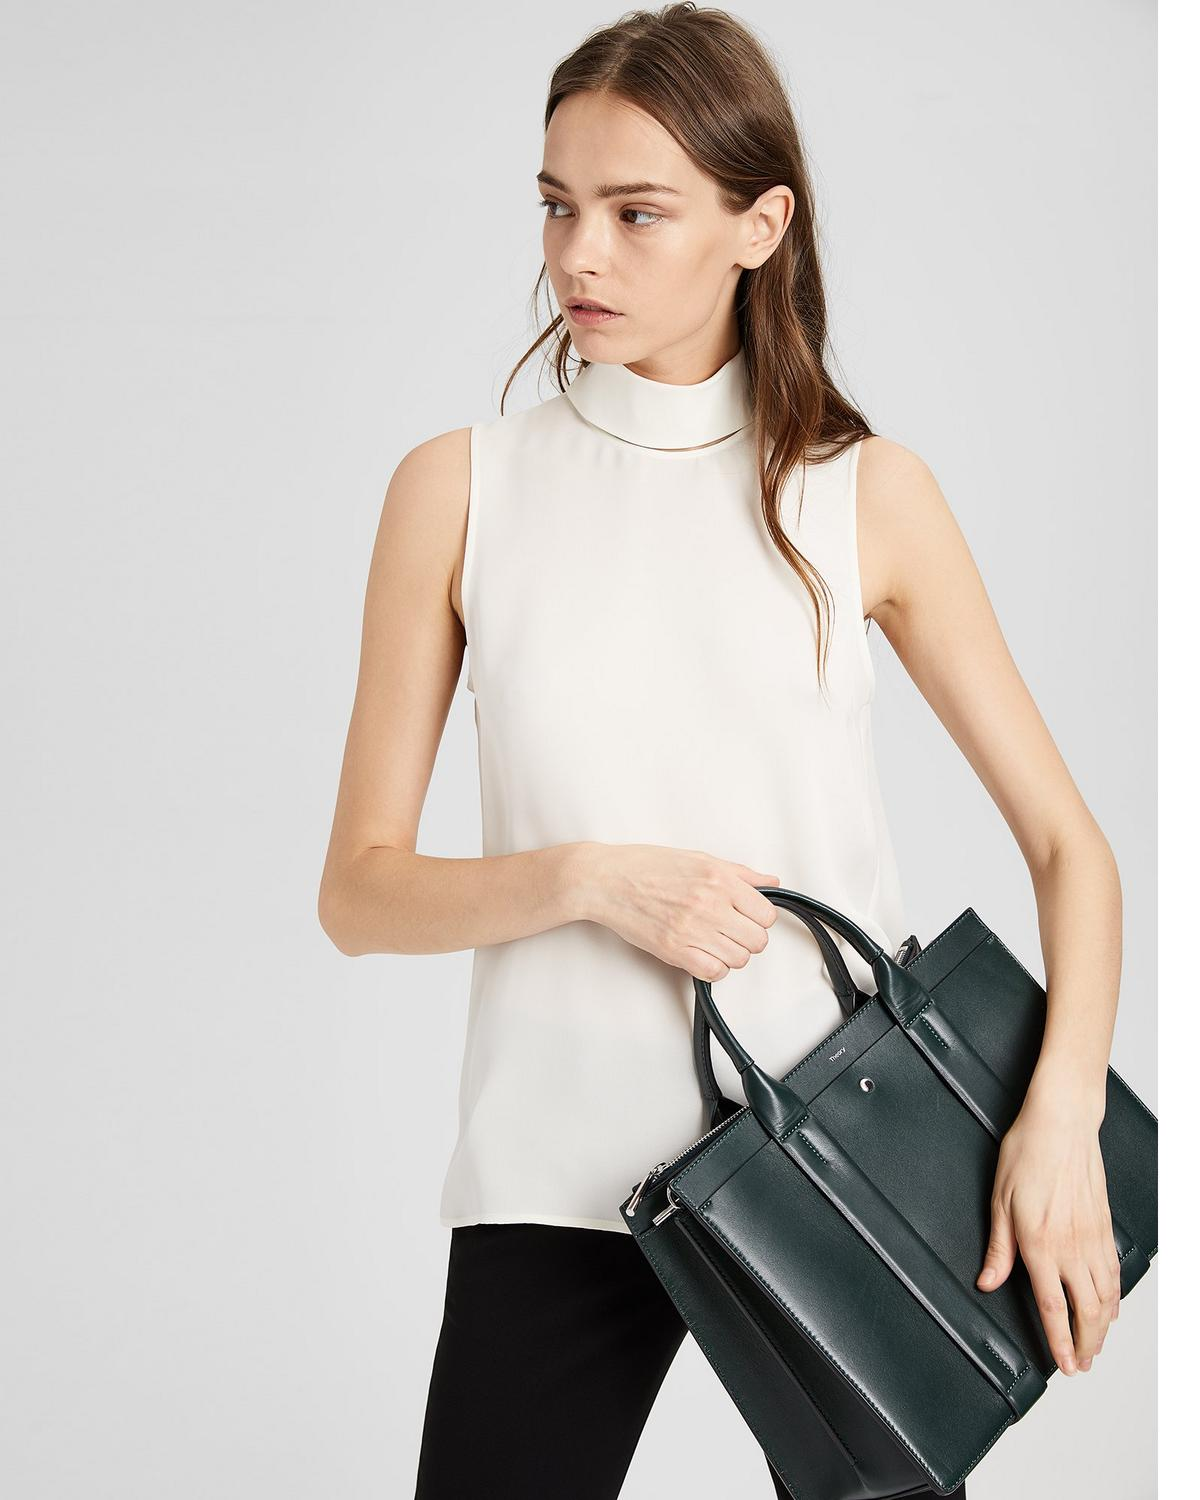 WEST BAG IN NAPPA LEATHER